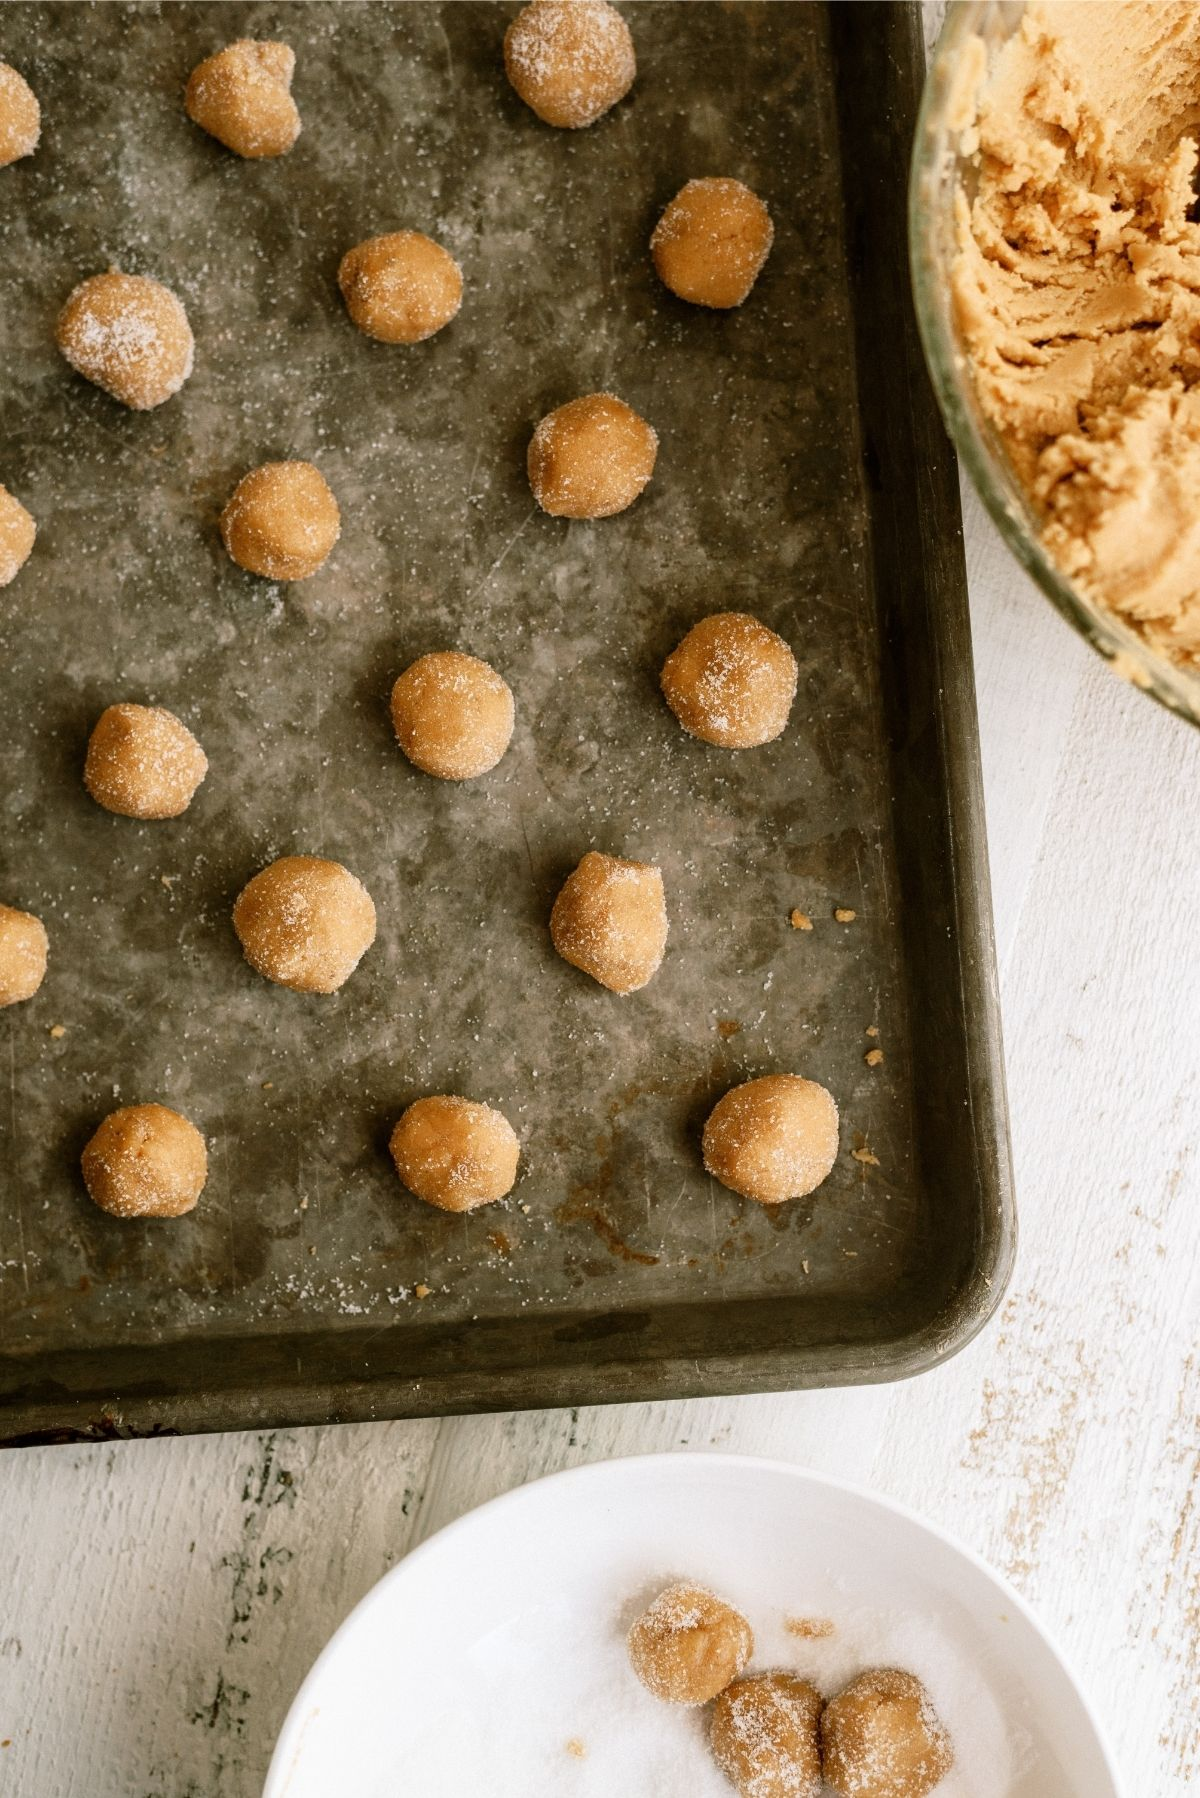 Peanut butter cookie dough rolled into balls on cookie sheet